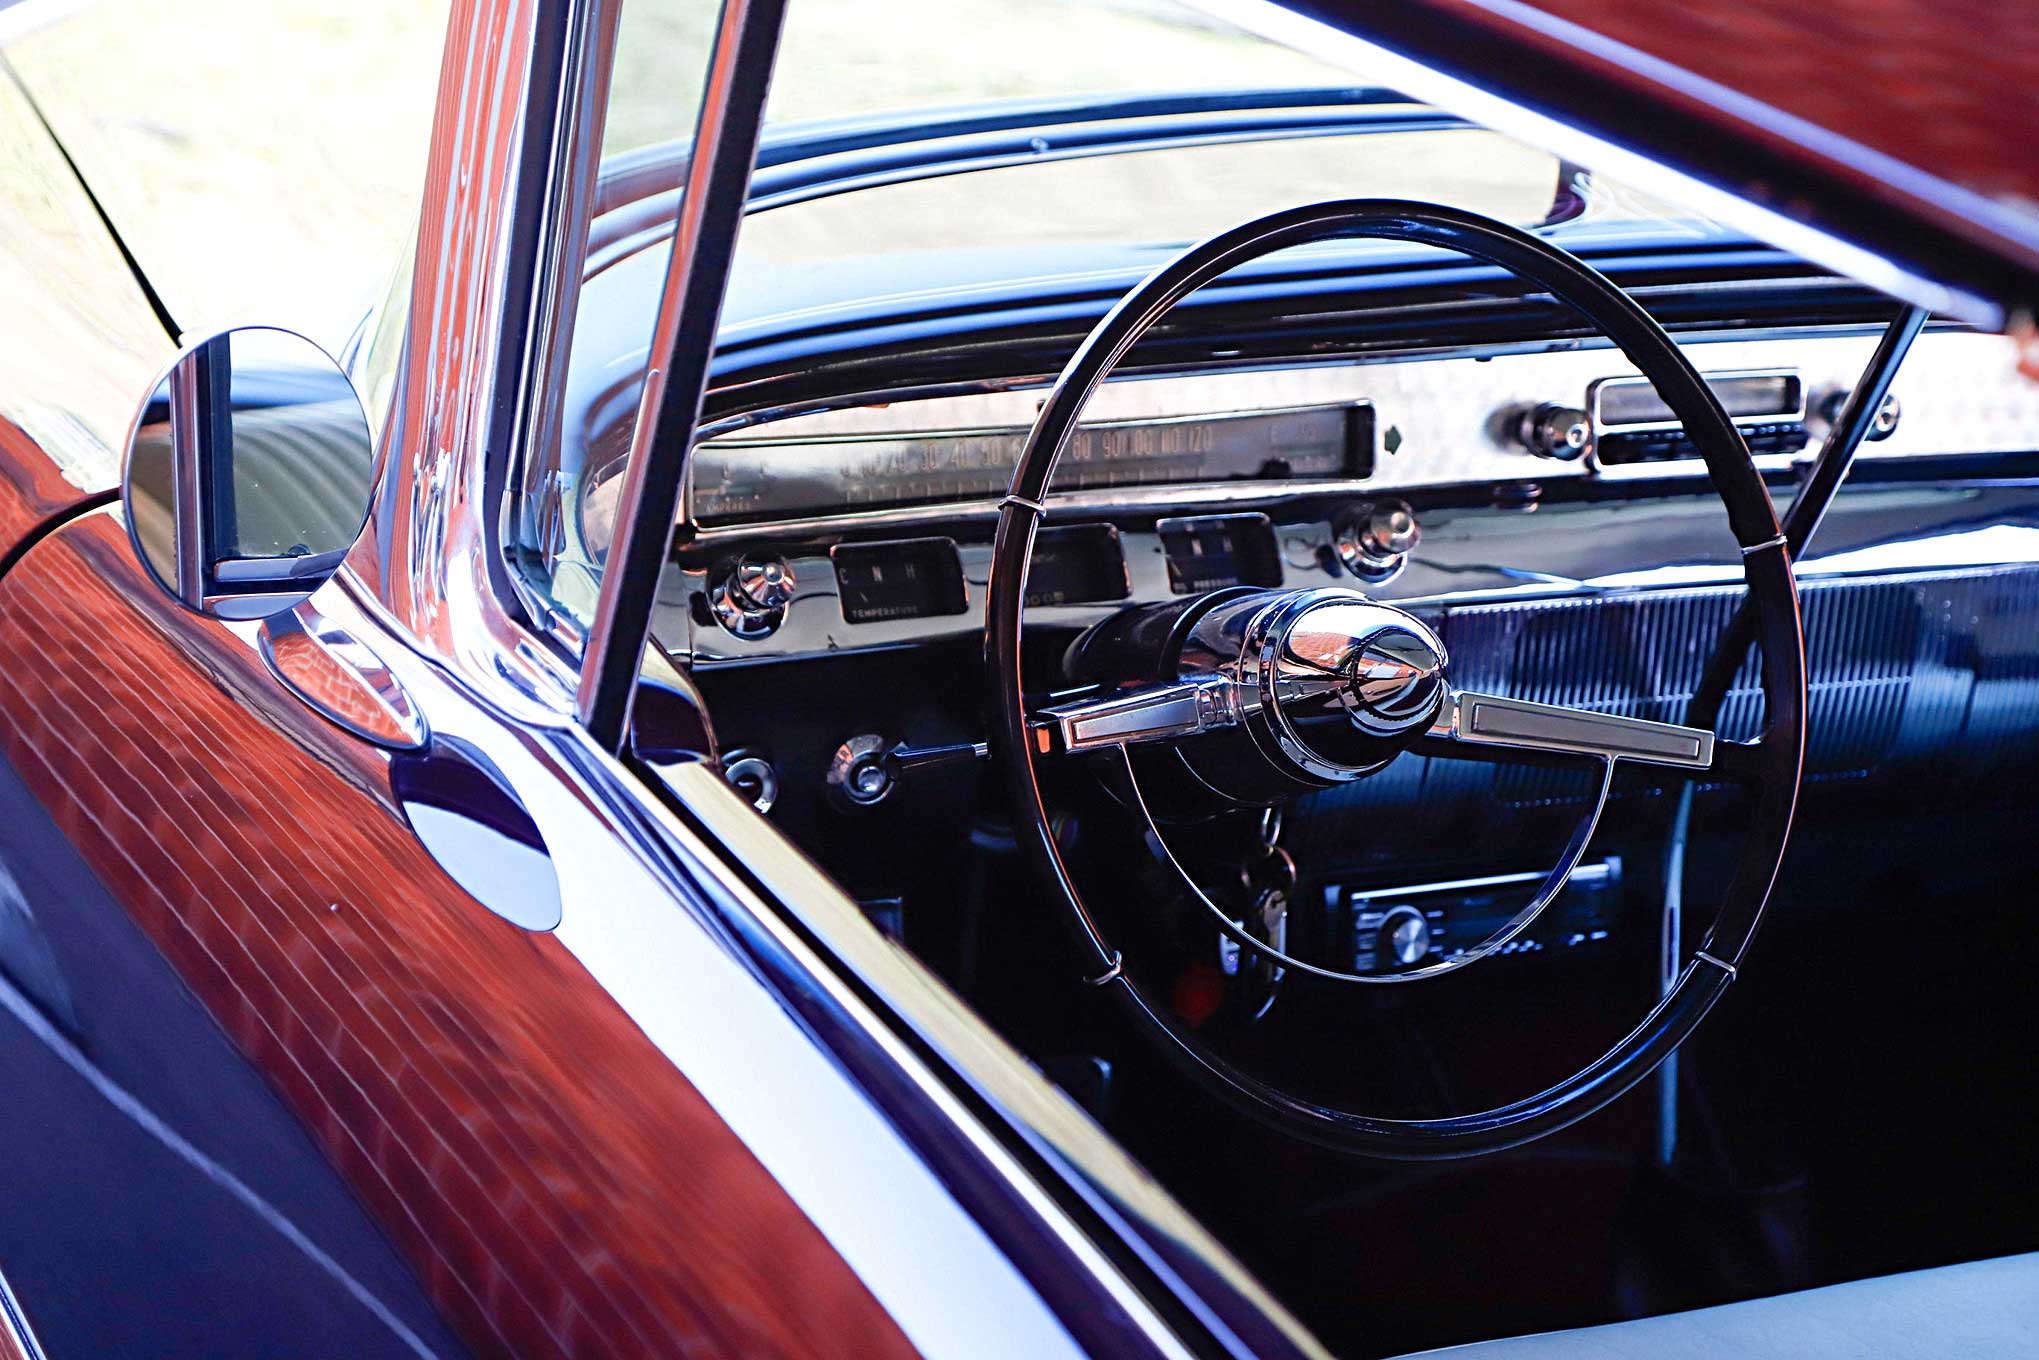 1956 Buick Special Wiring Diagram Get Free Image About Wiring